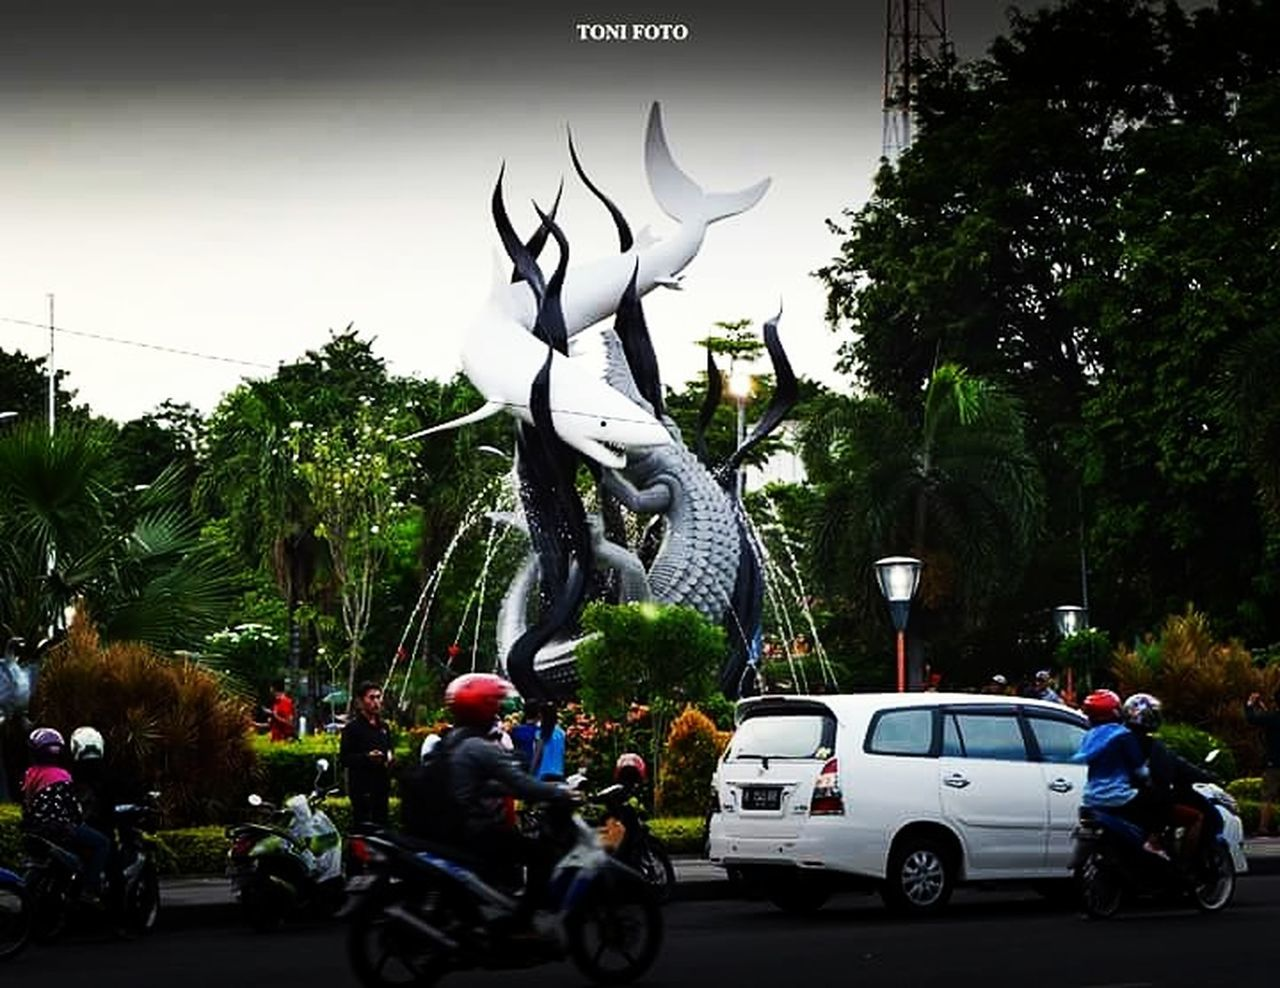 car, tree, land vehicle, statue, transportation, mode of transport, sculpture, day, road, outdoors, no people, sky